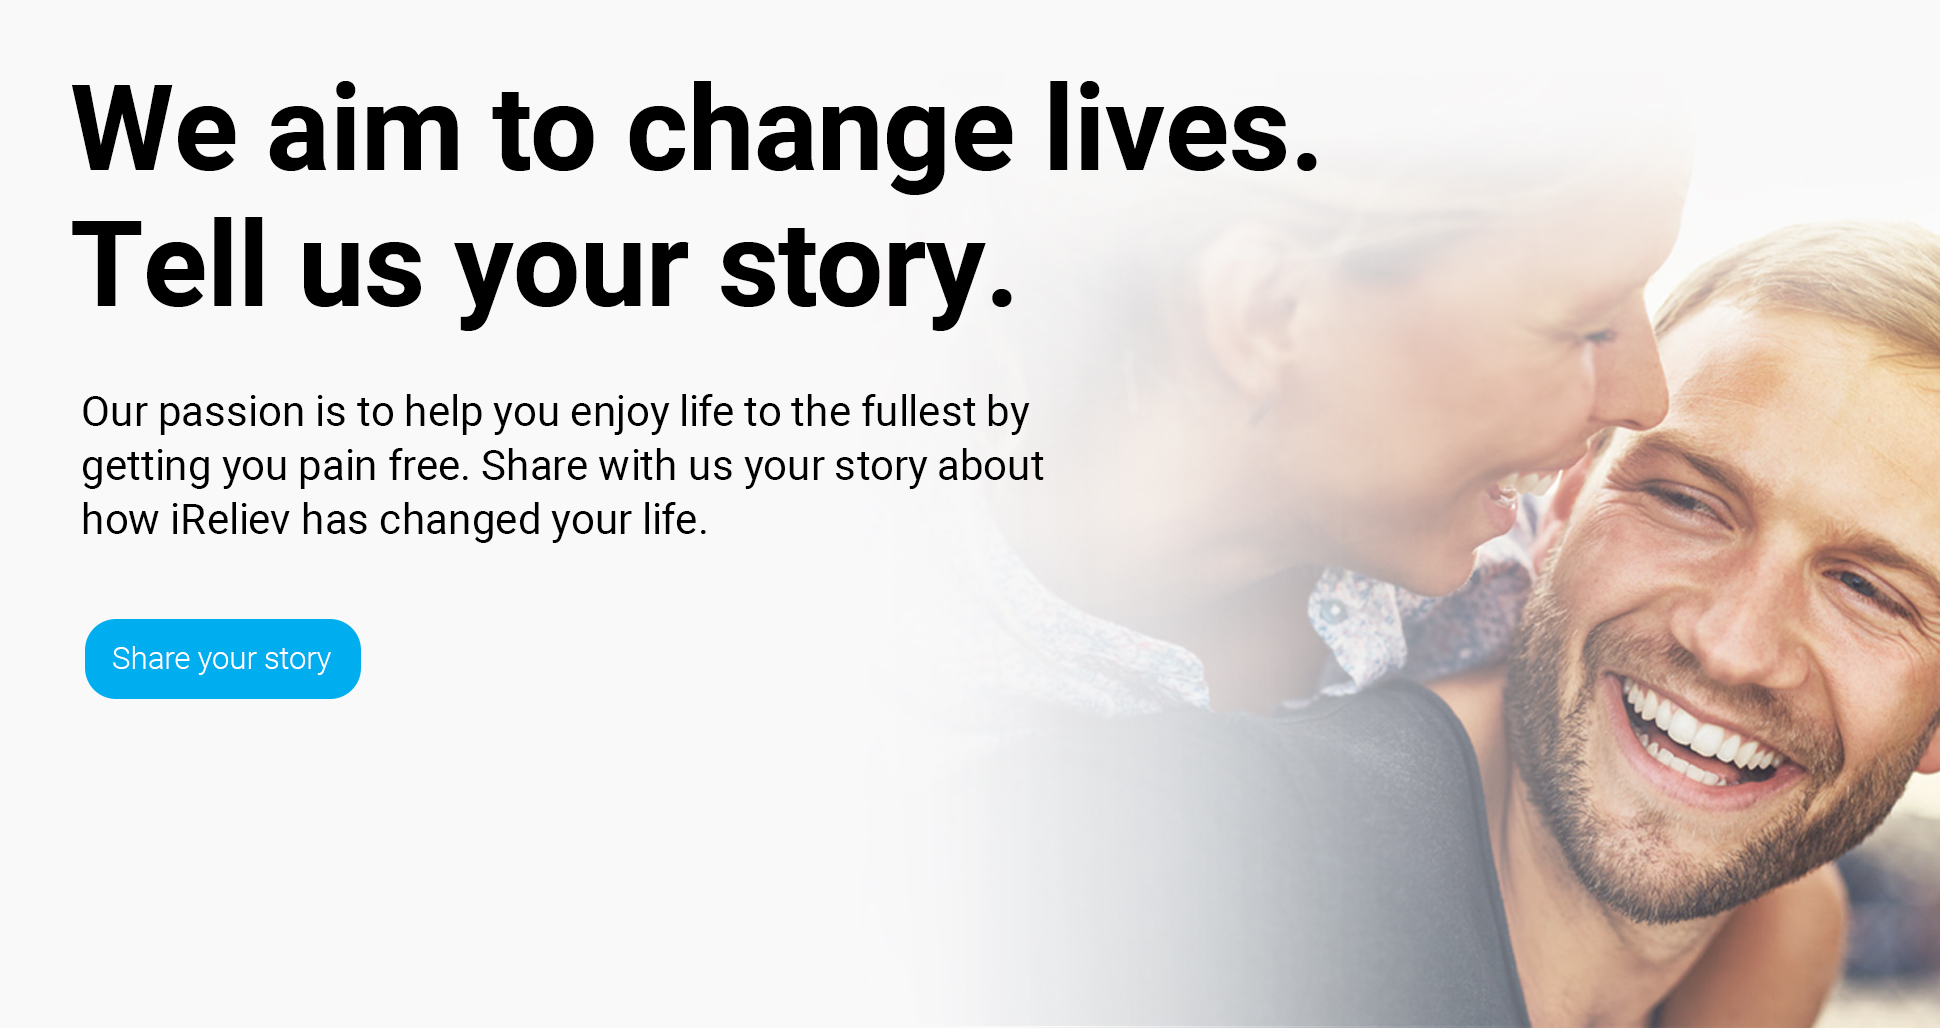 Share your story with iReliev